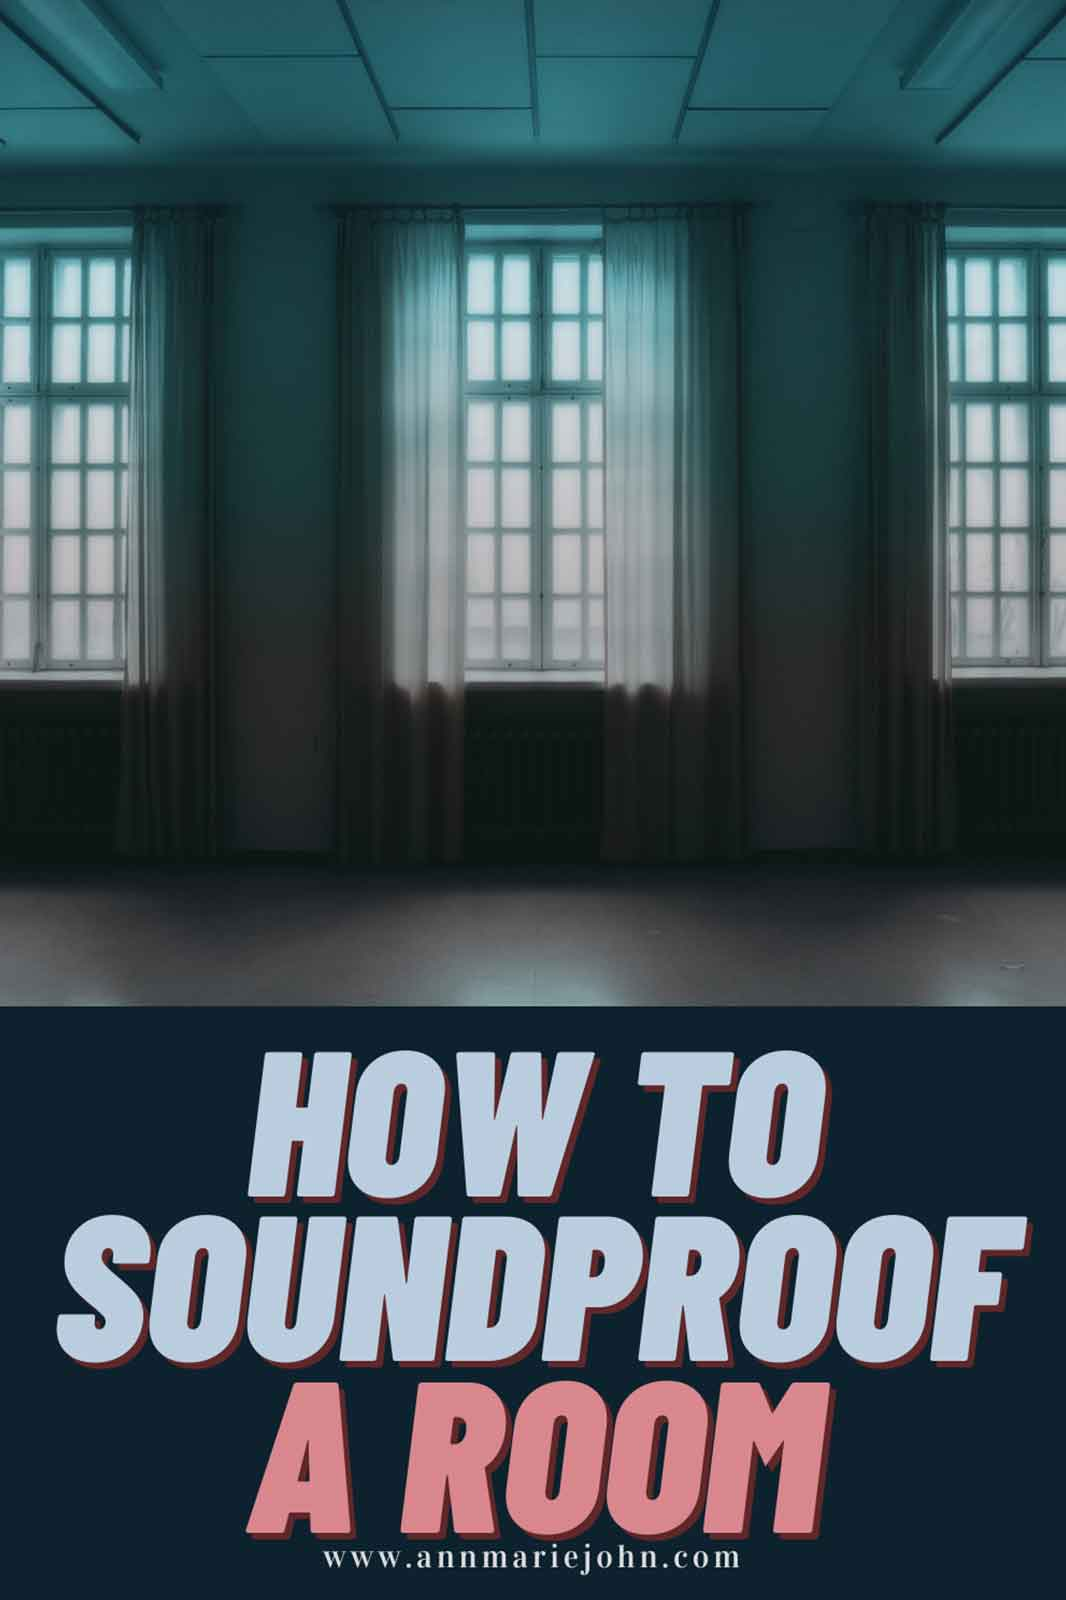 Expert Tips for Soundproofing a Room